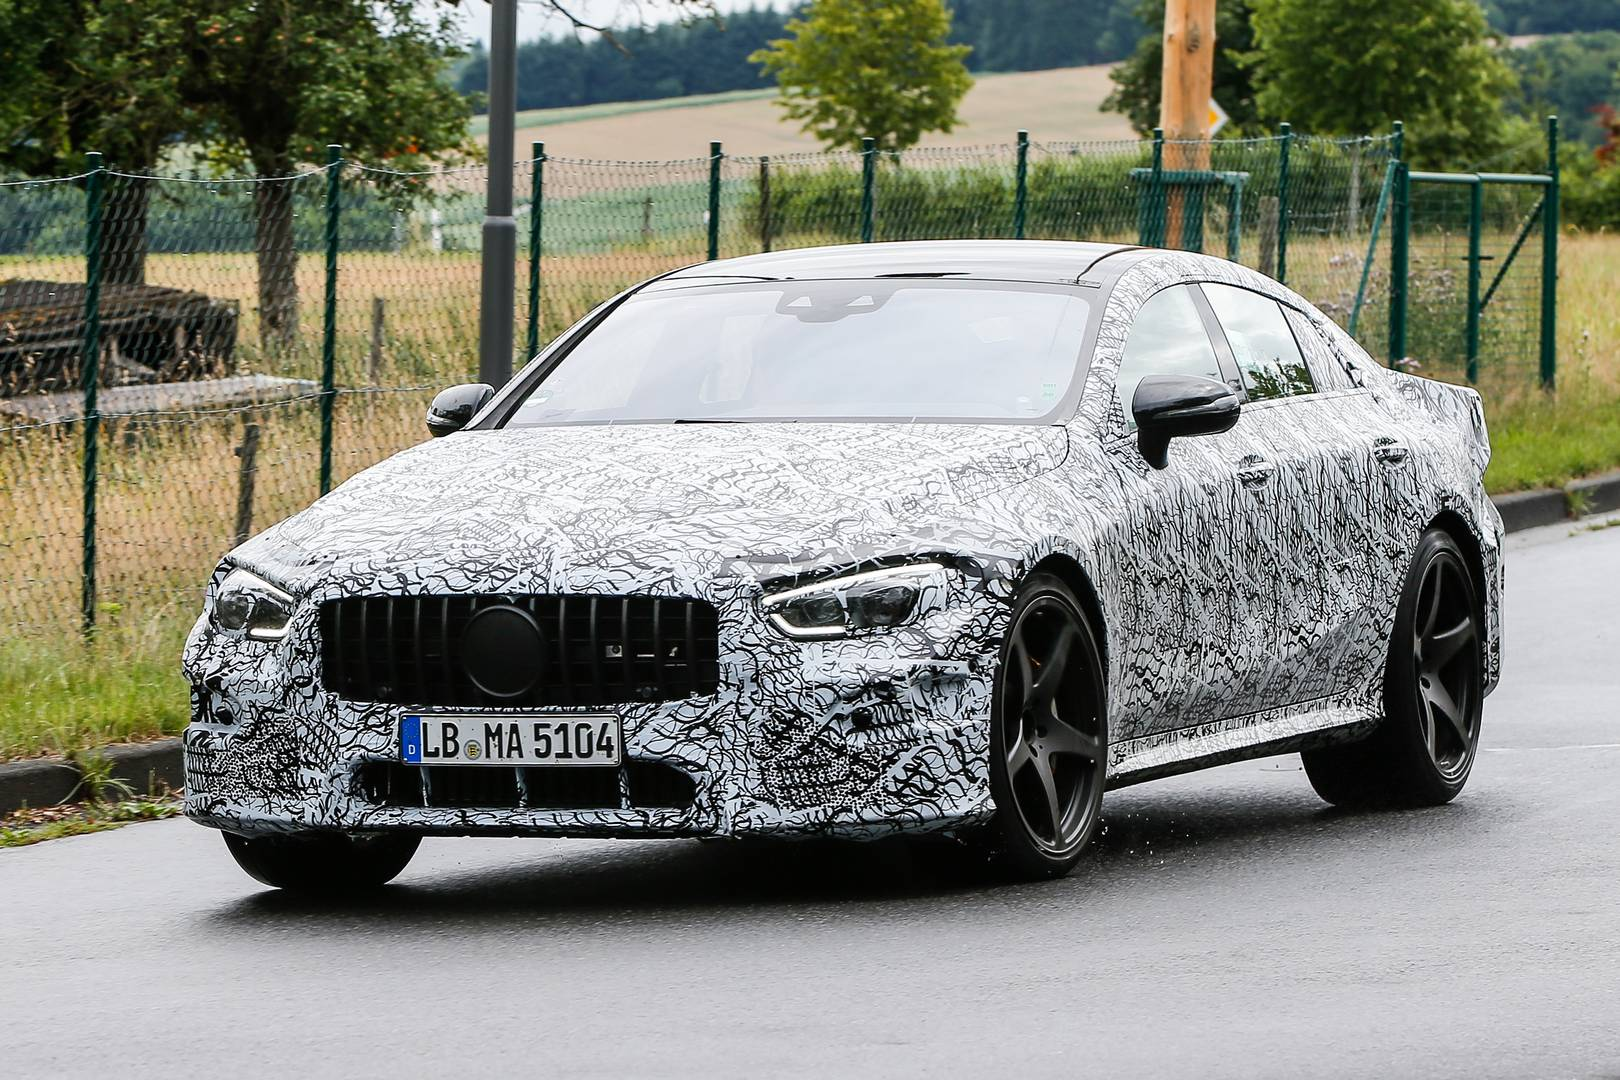 Mercedes-AMG GT 4-Door Latest Spy Shots